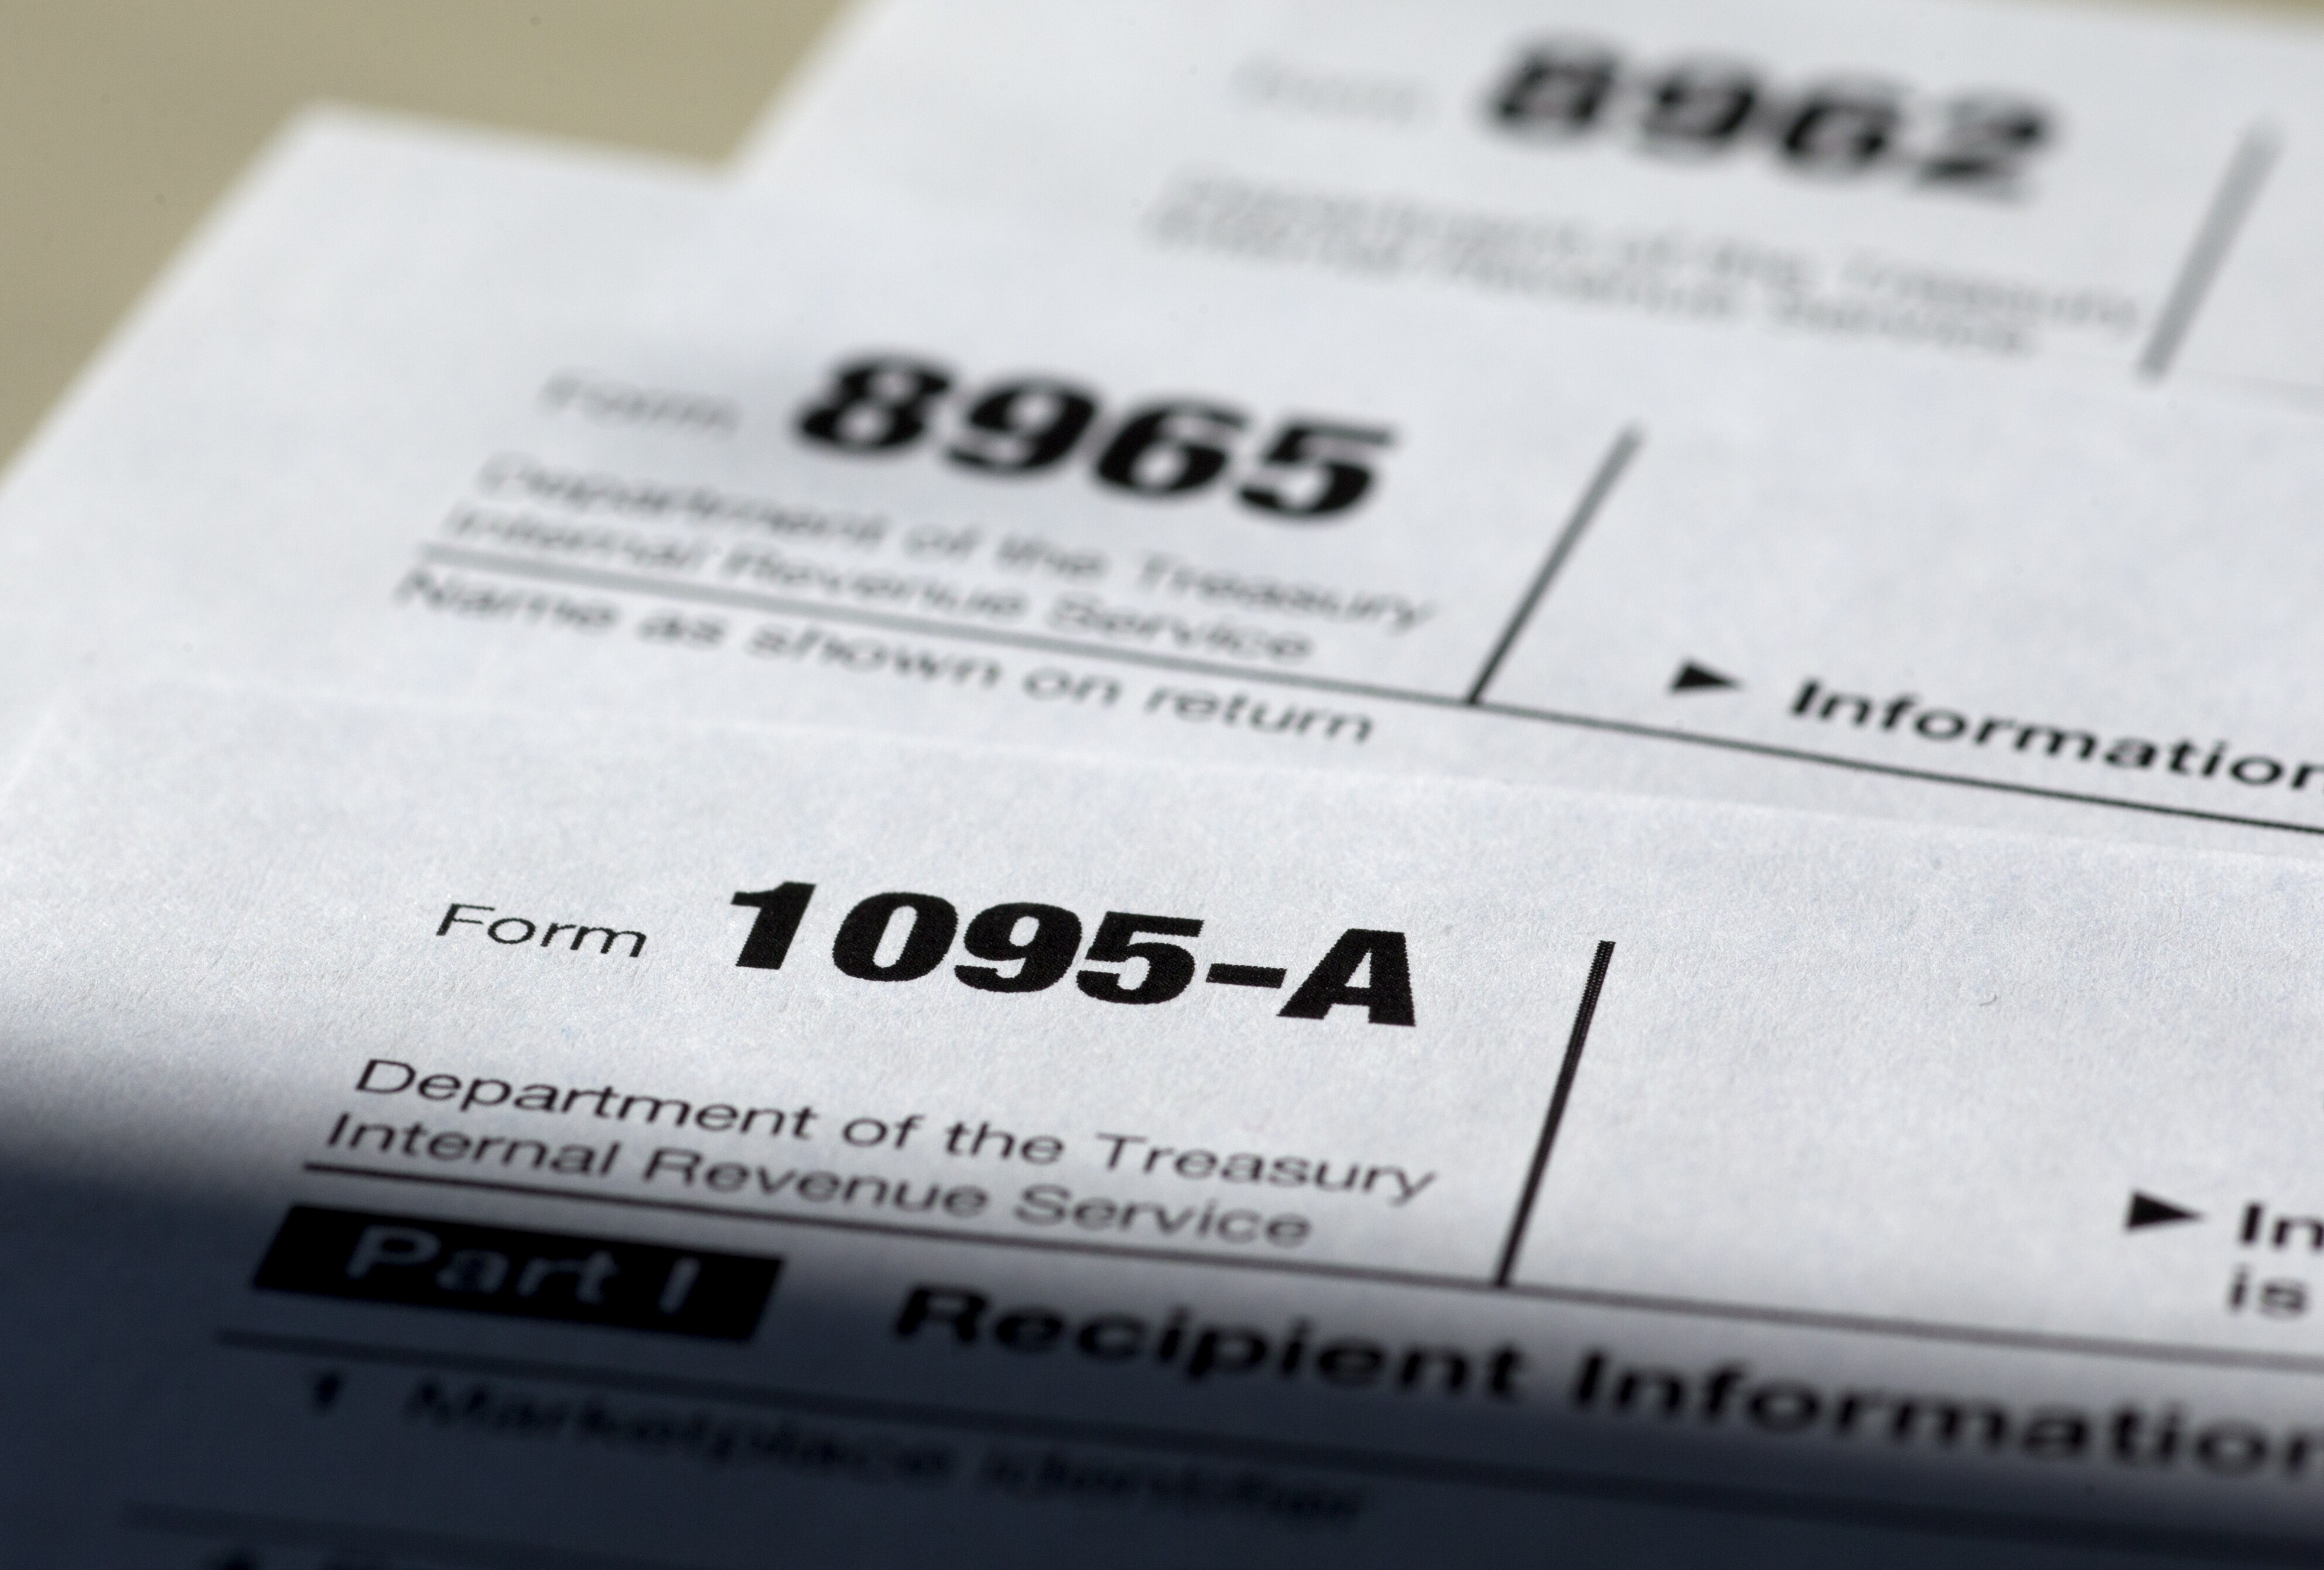 IRS gives recipients of botched tax forms more time